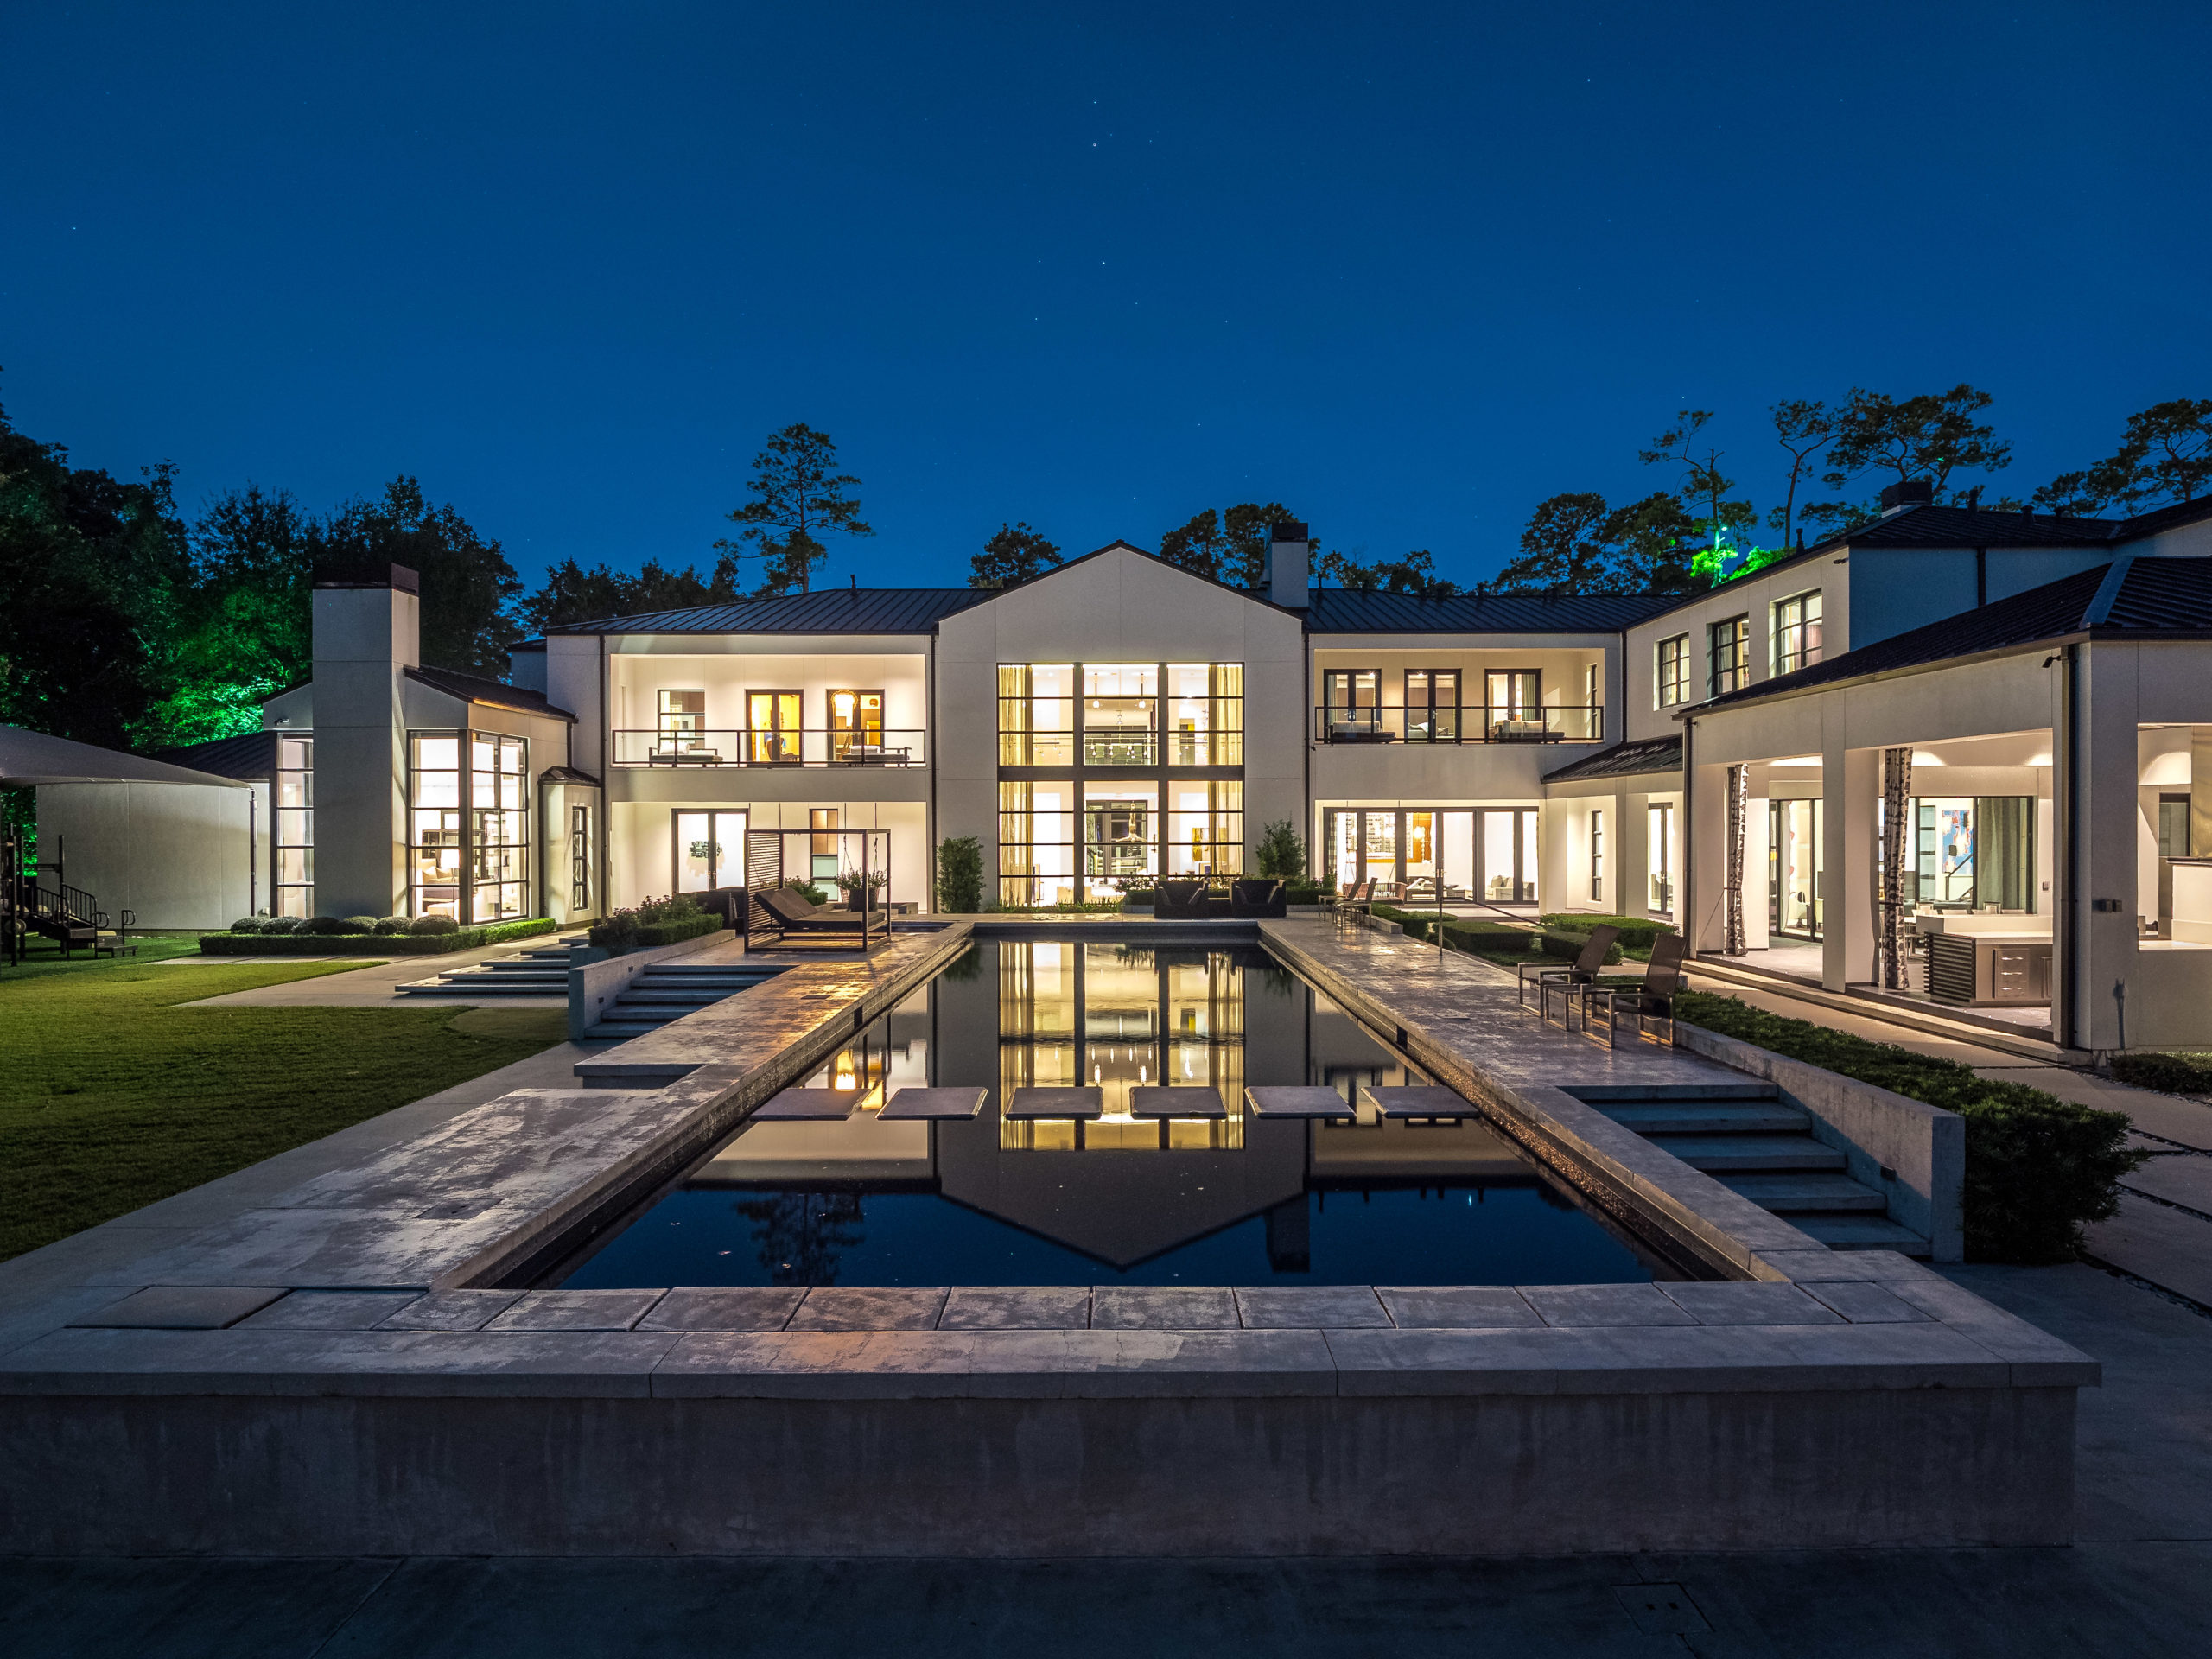 24 5 Million Memorial Mega Mansion Hits Market As One Of Houston S Most Expensive Houses Ever